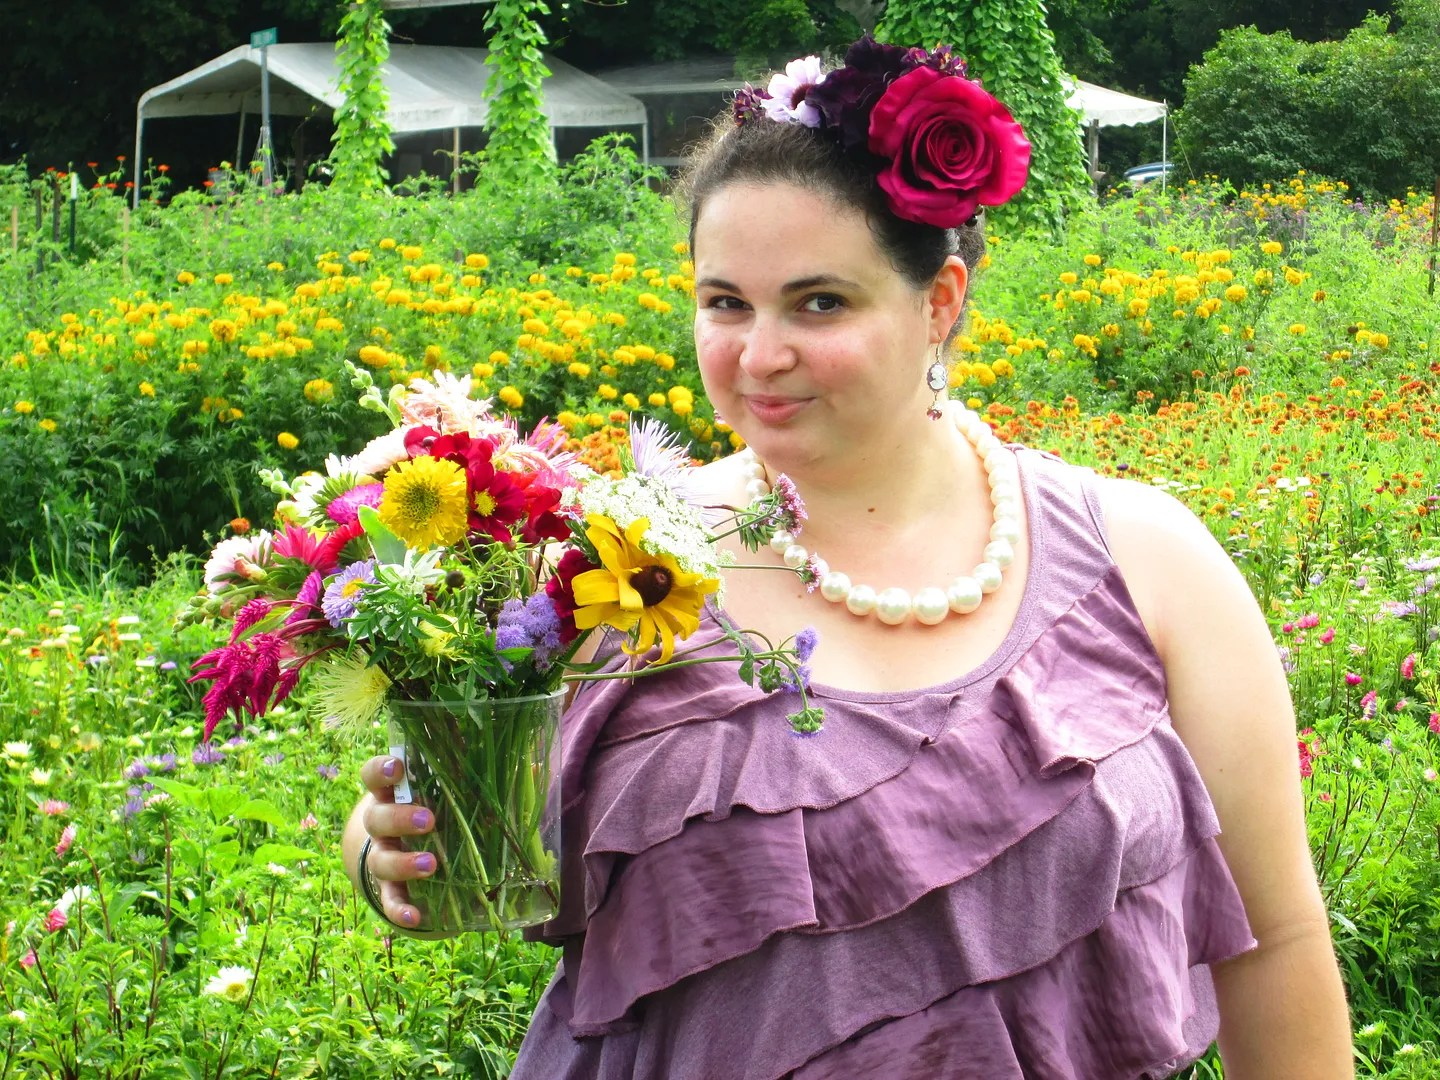 plus size purple outfit with flowers in field